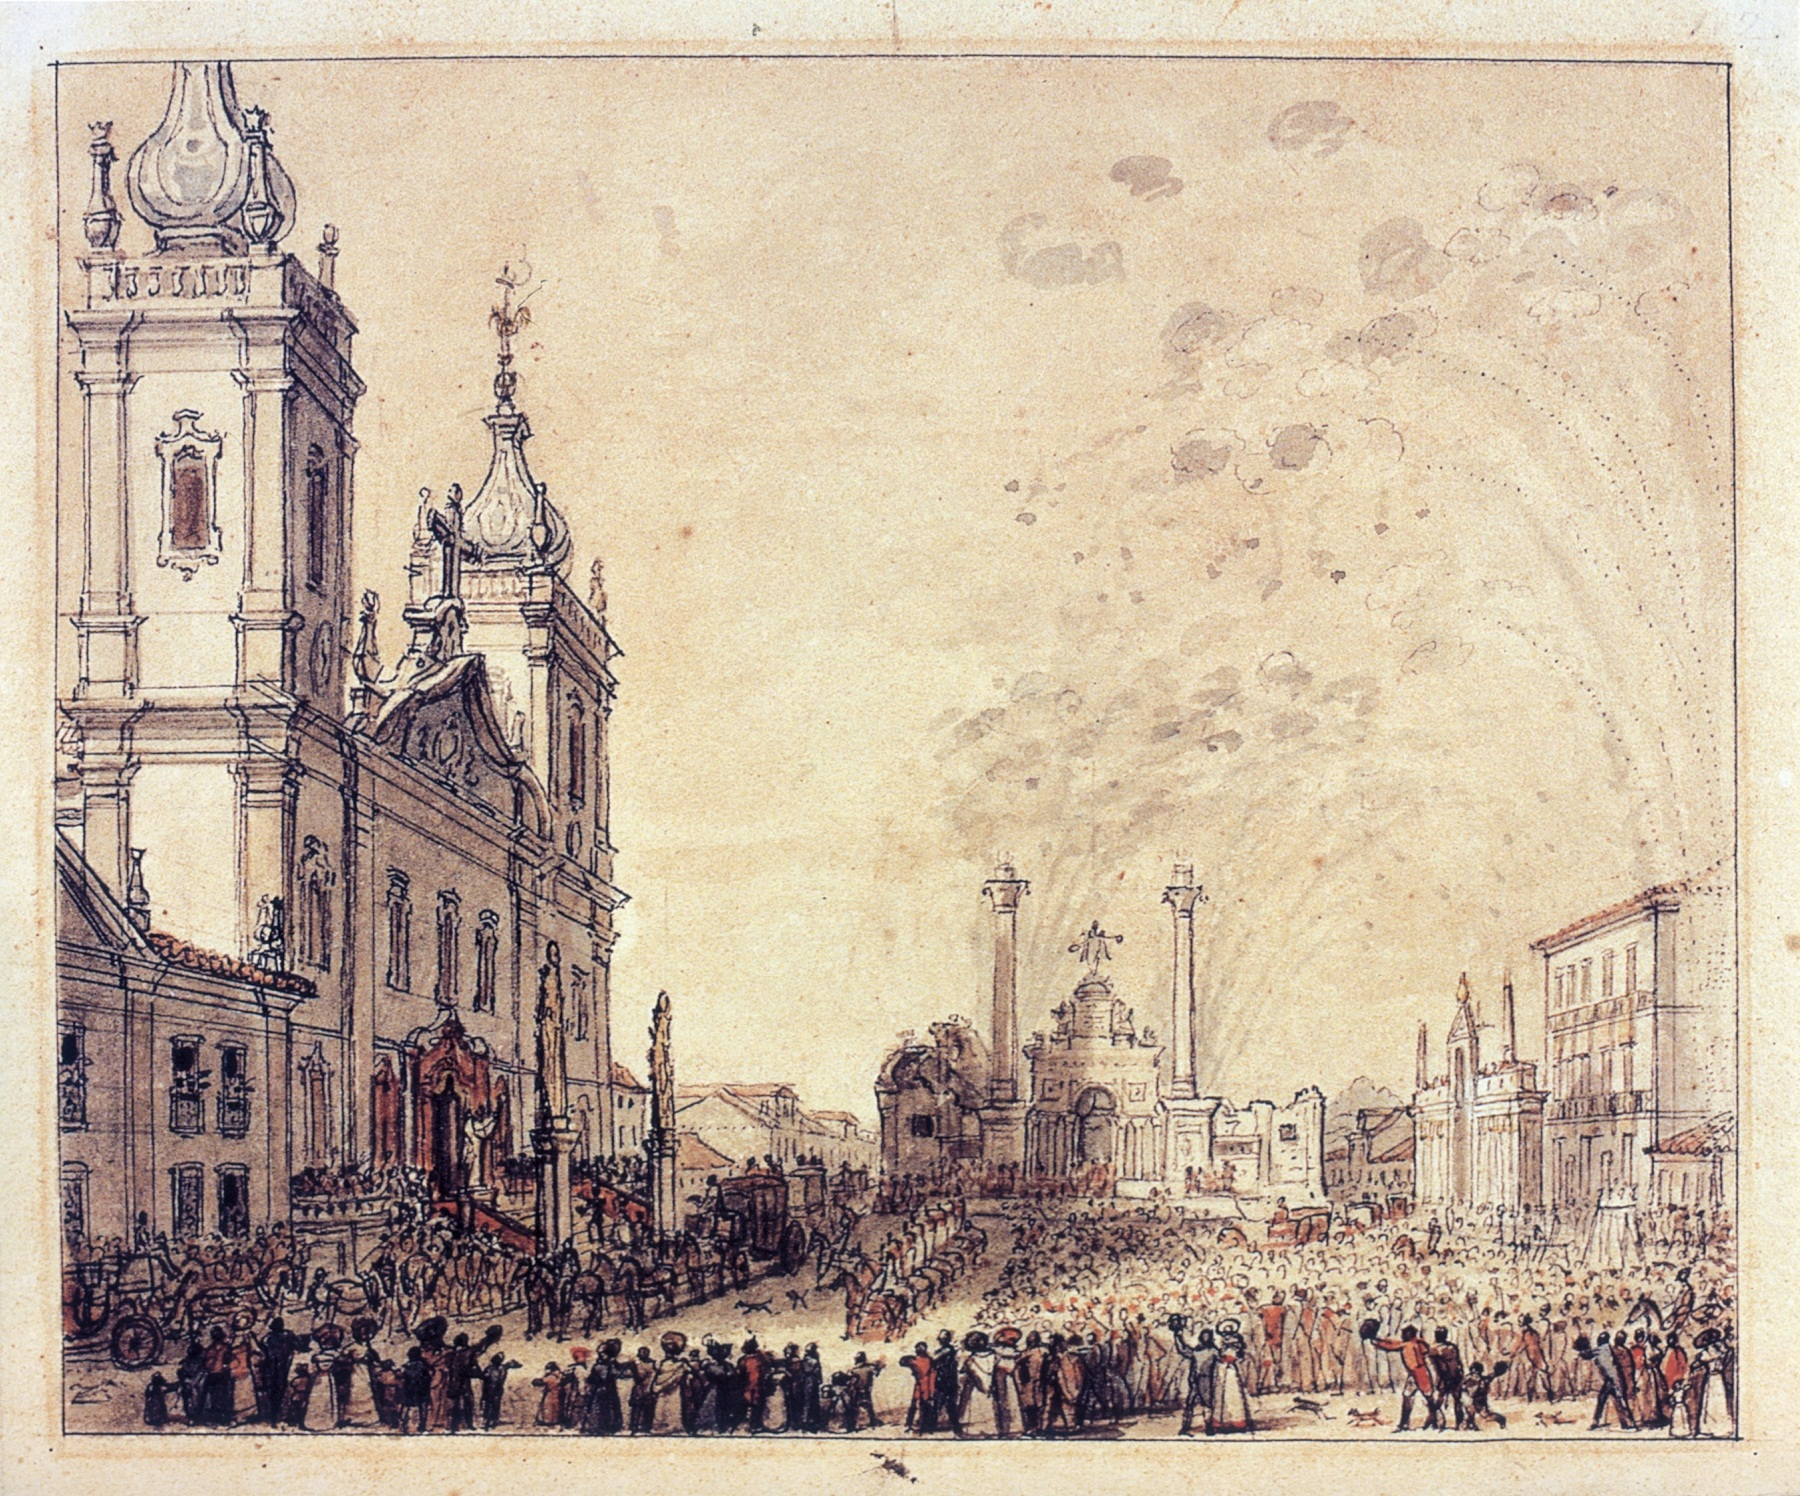 File:Celebration for the return of Emperor Pedro I 1826.jpg